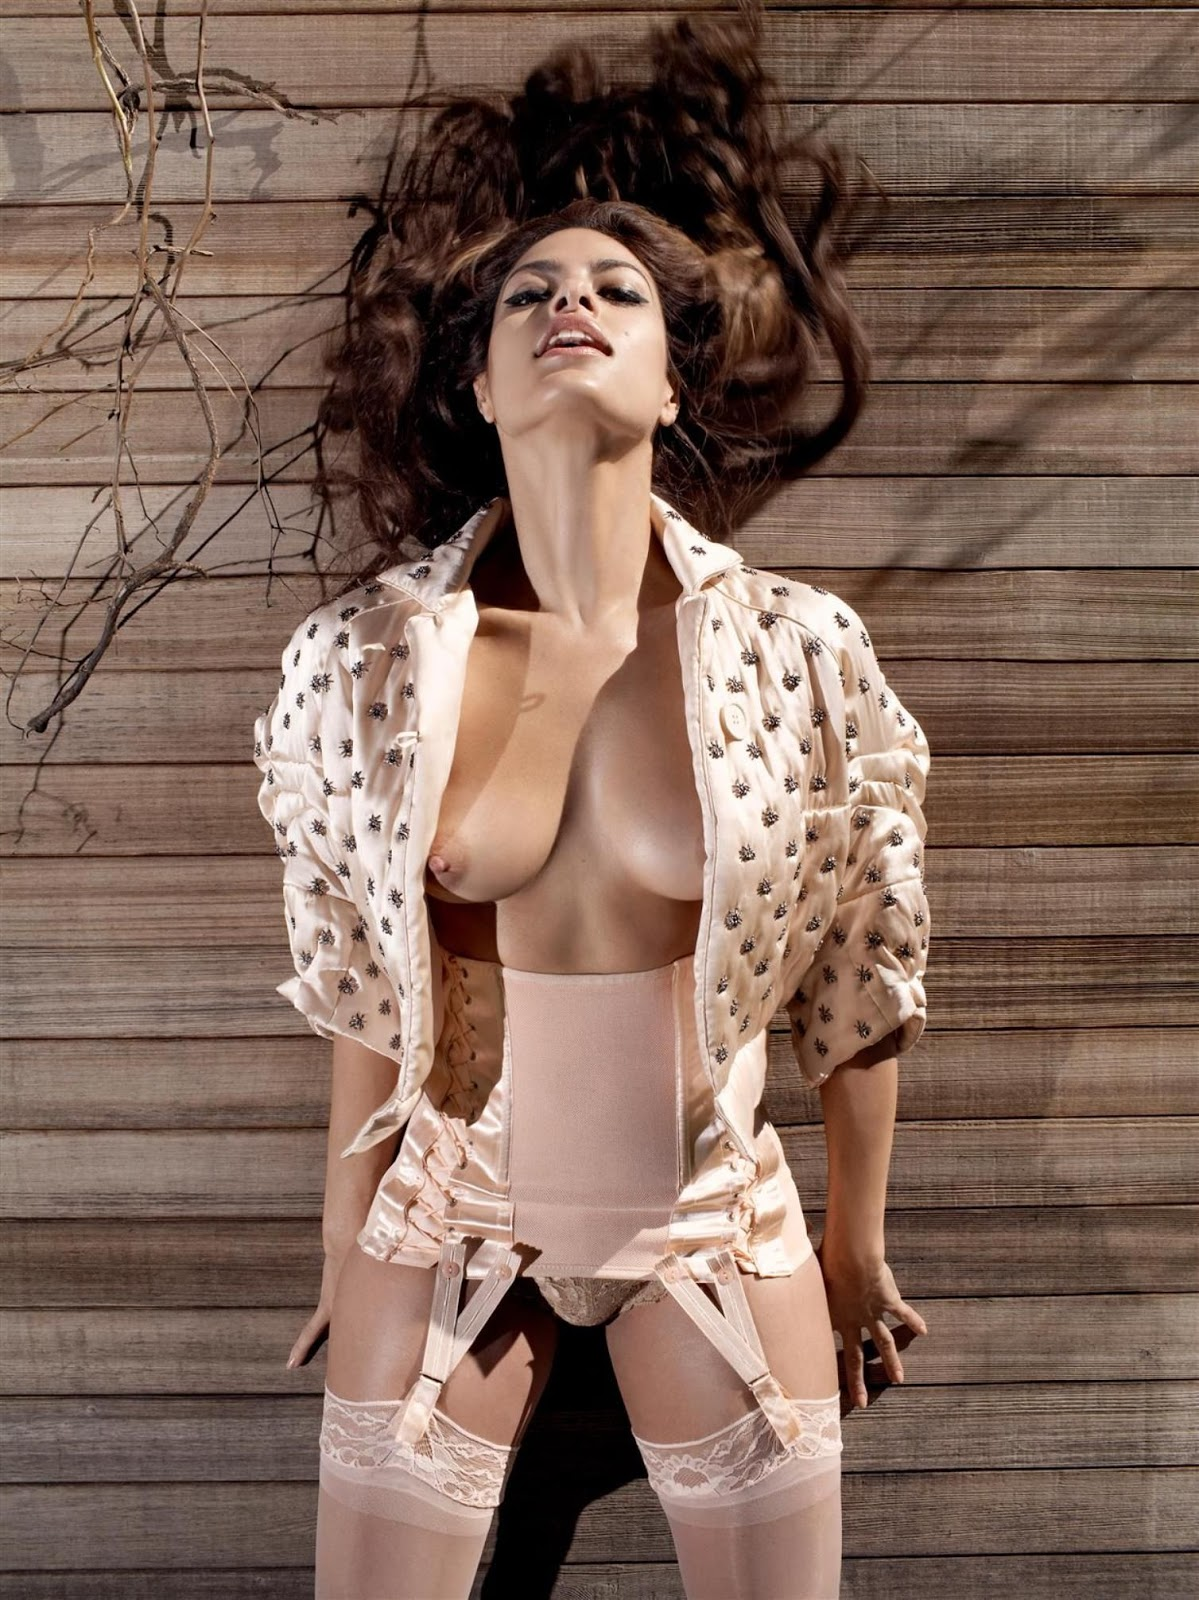 Eva mendes nude, topless pictures, playboy photos, sex scene uncensored